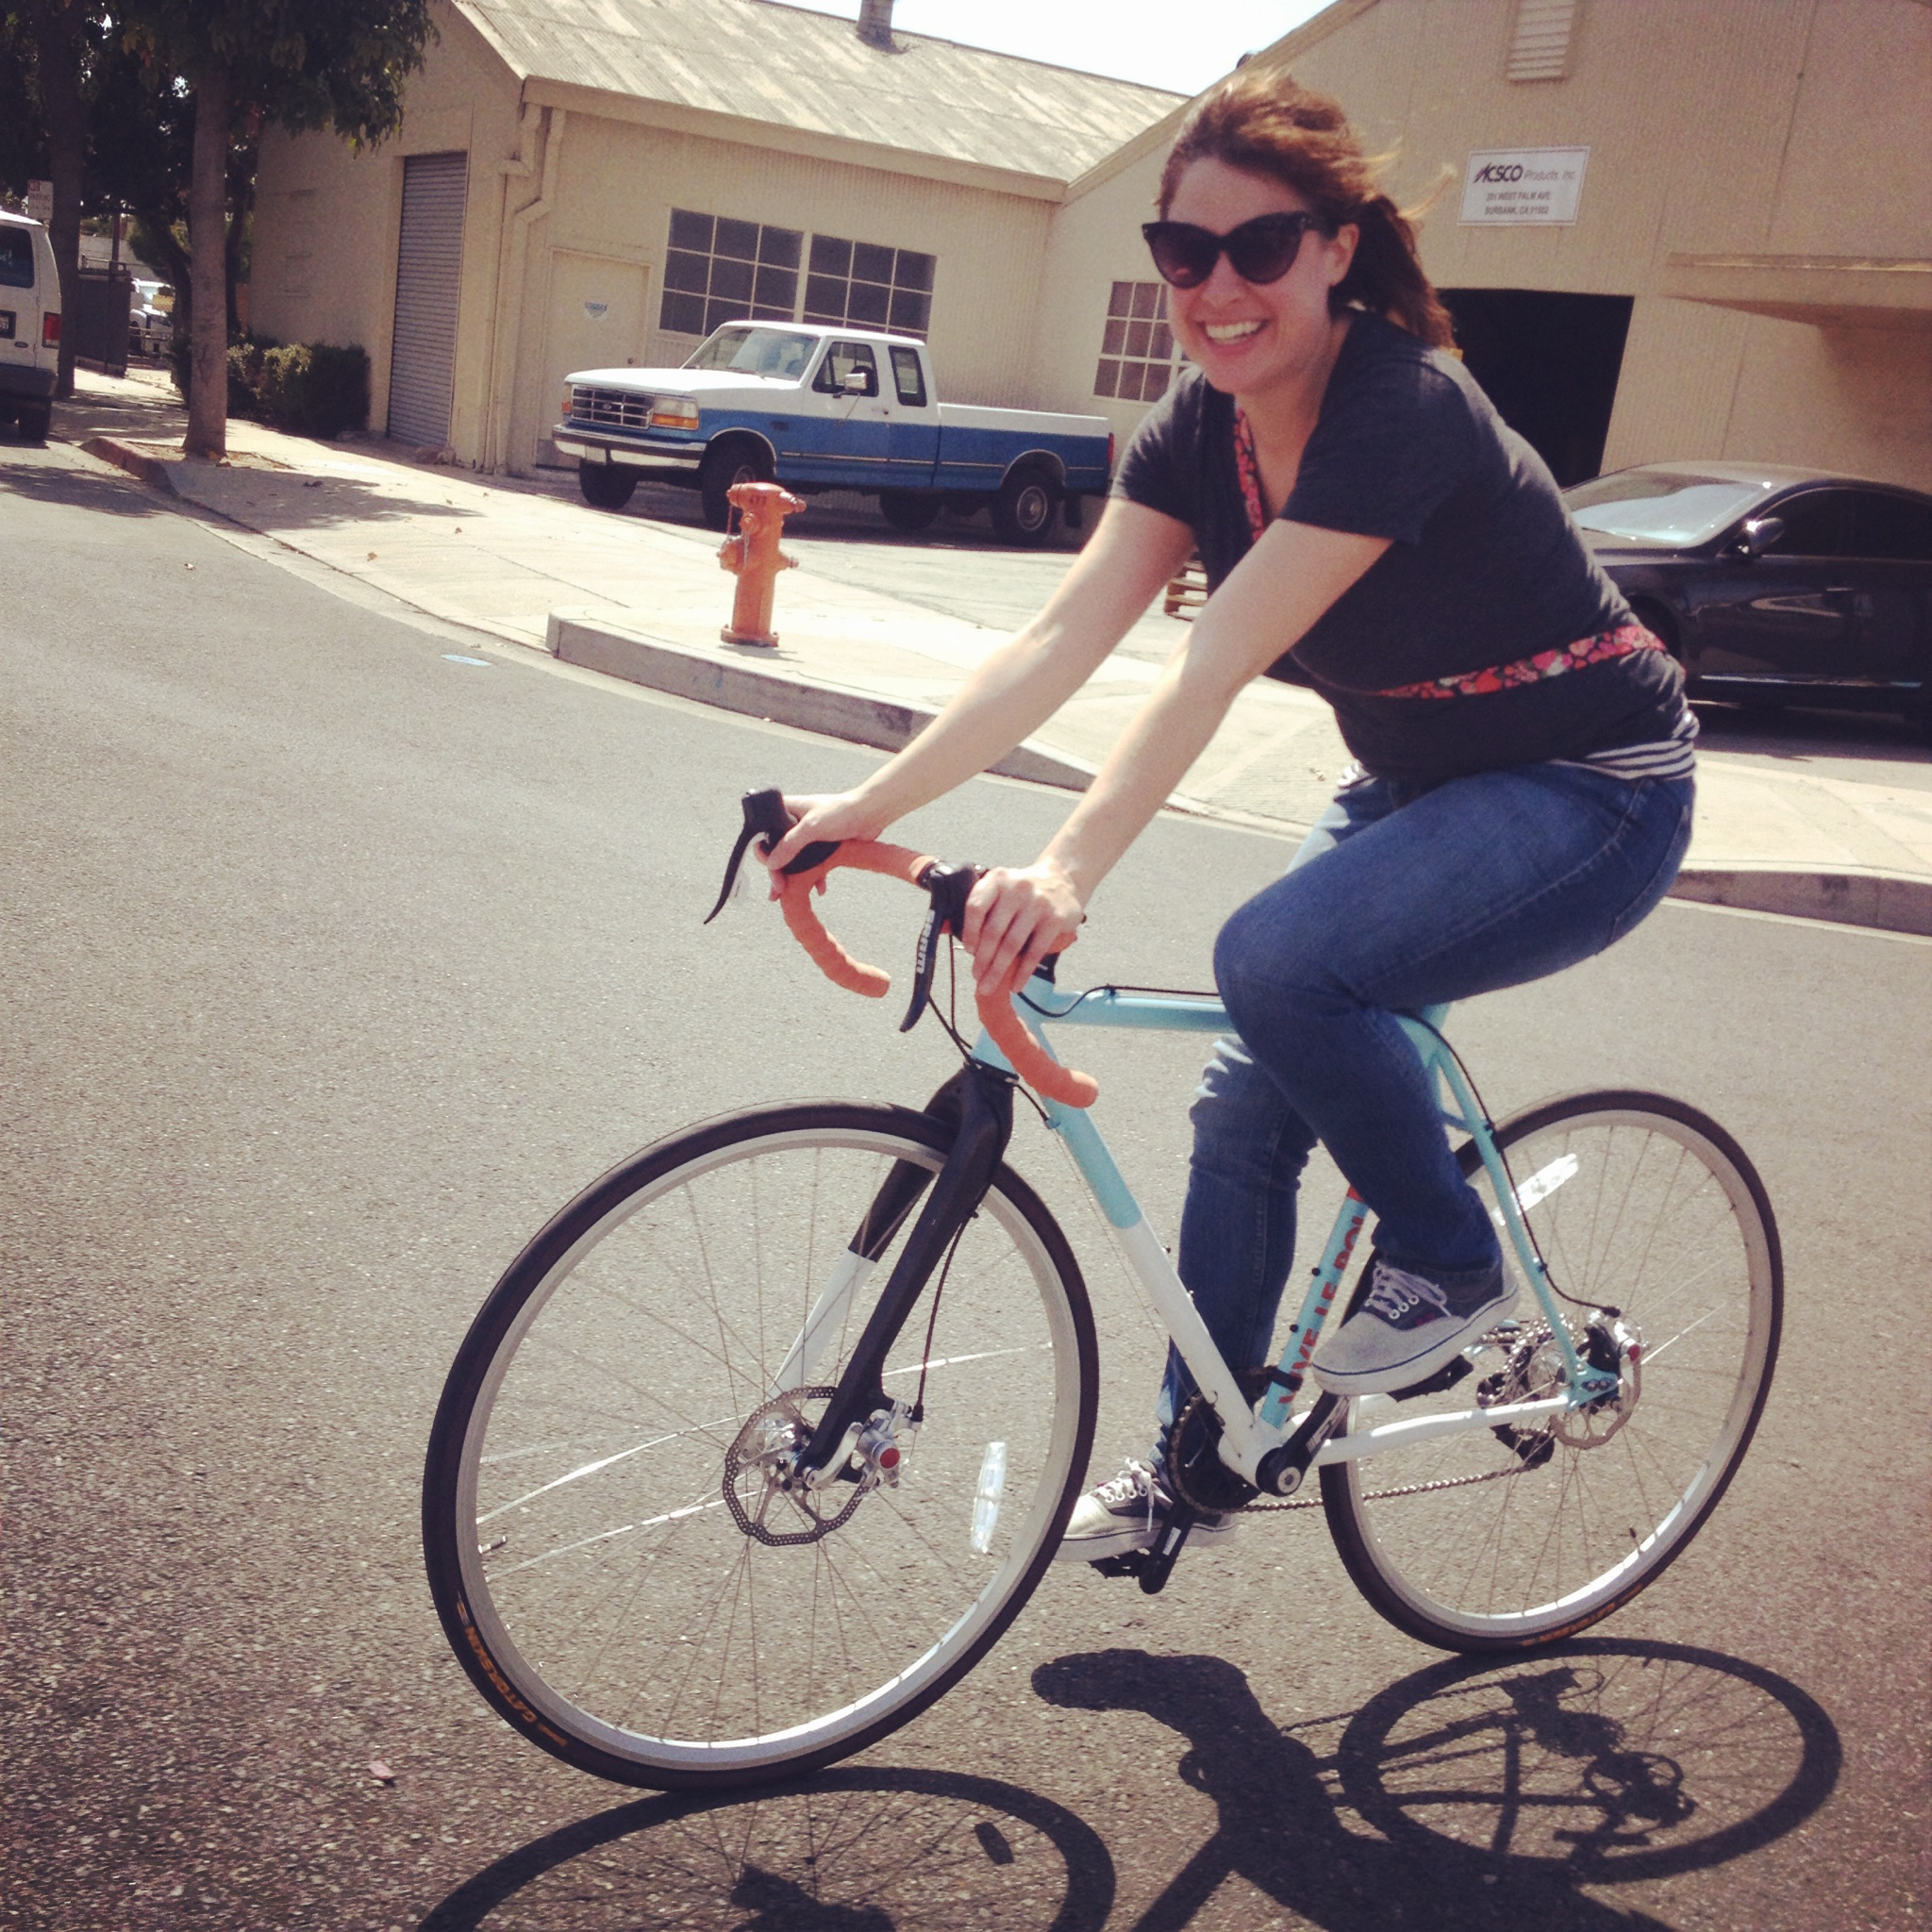 Katie on a bike!